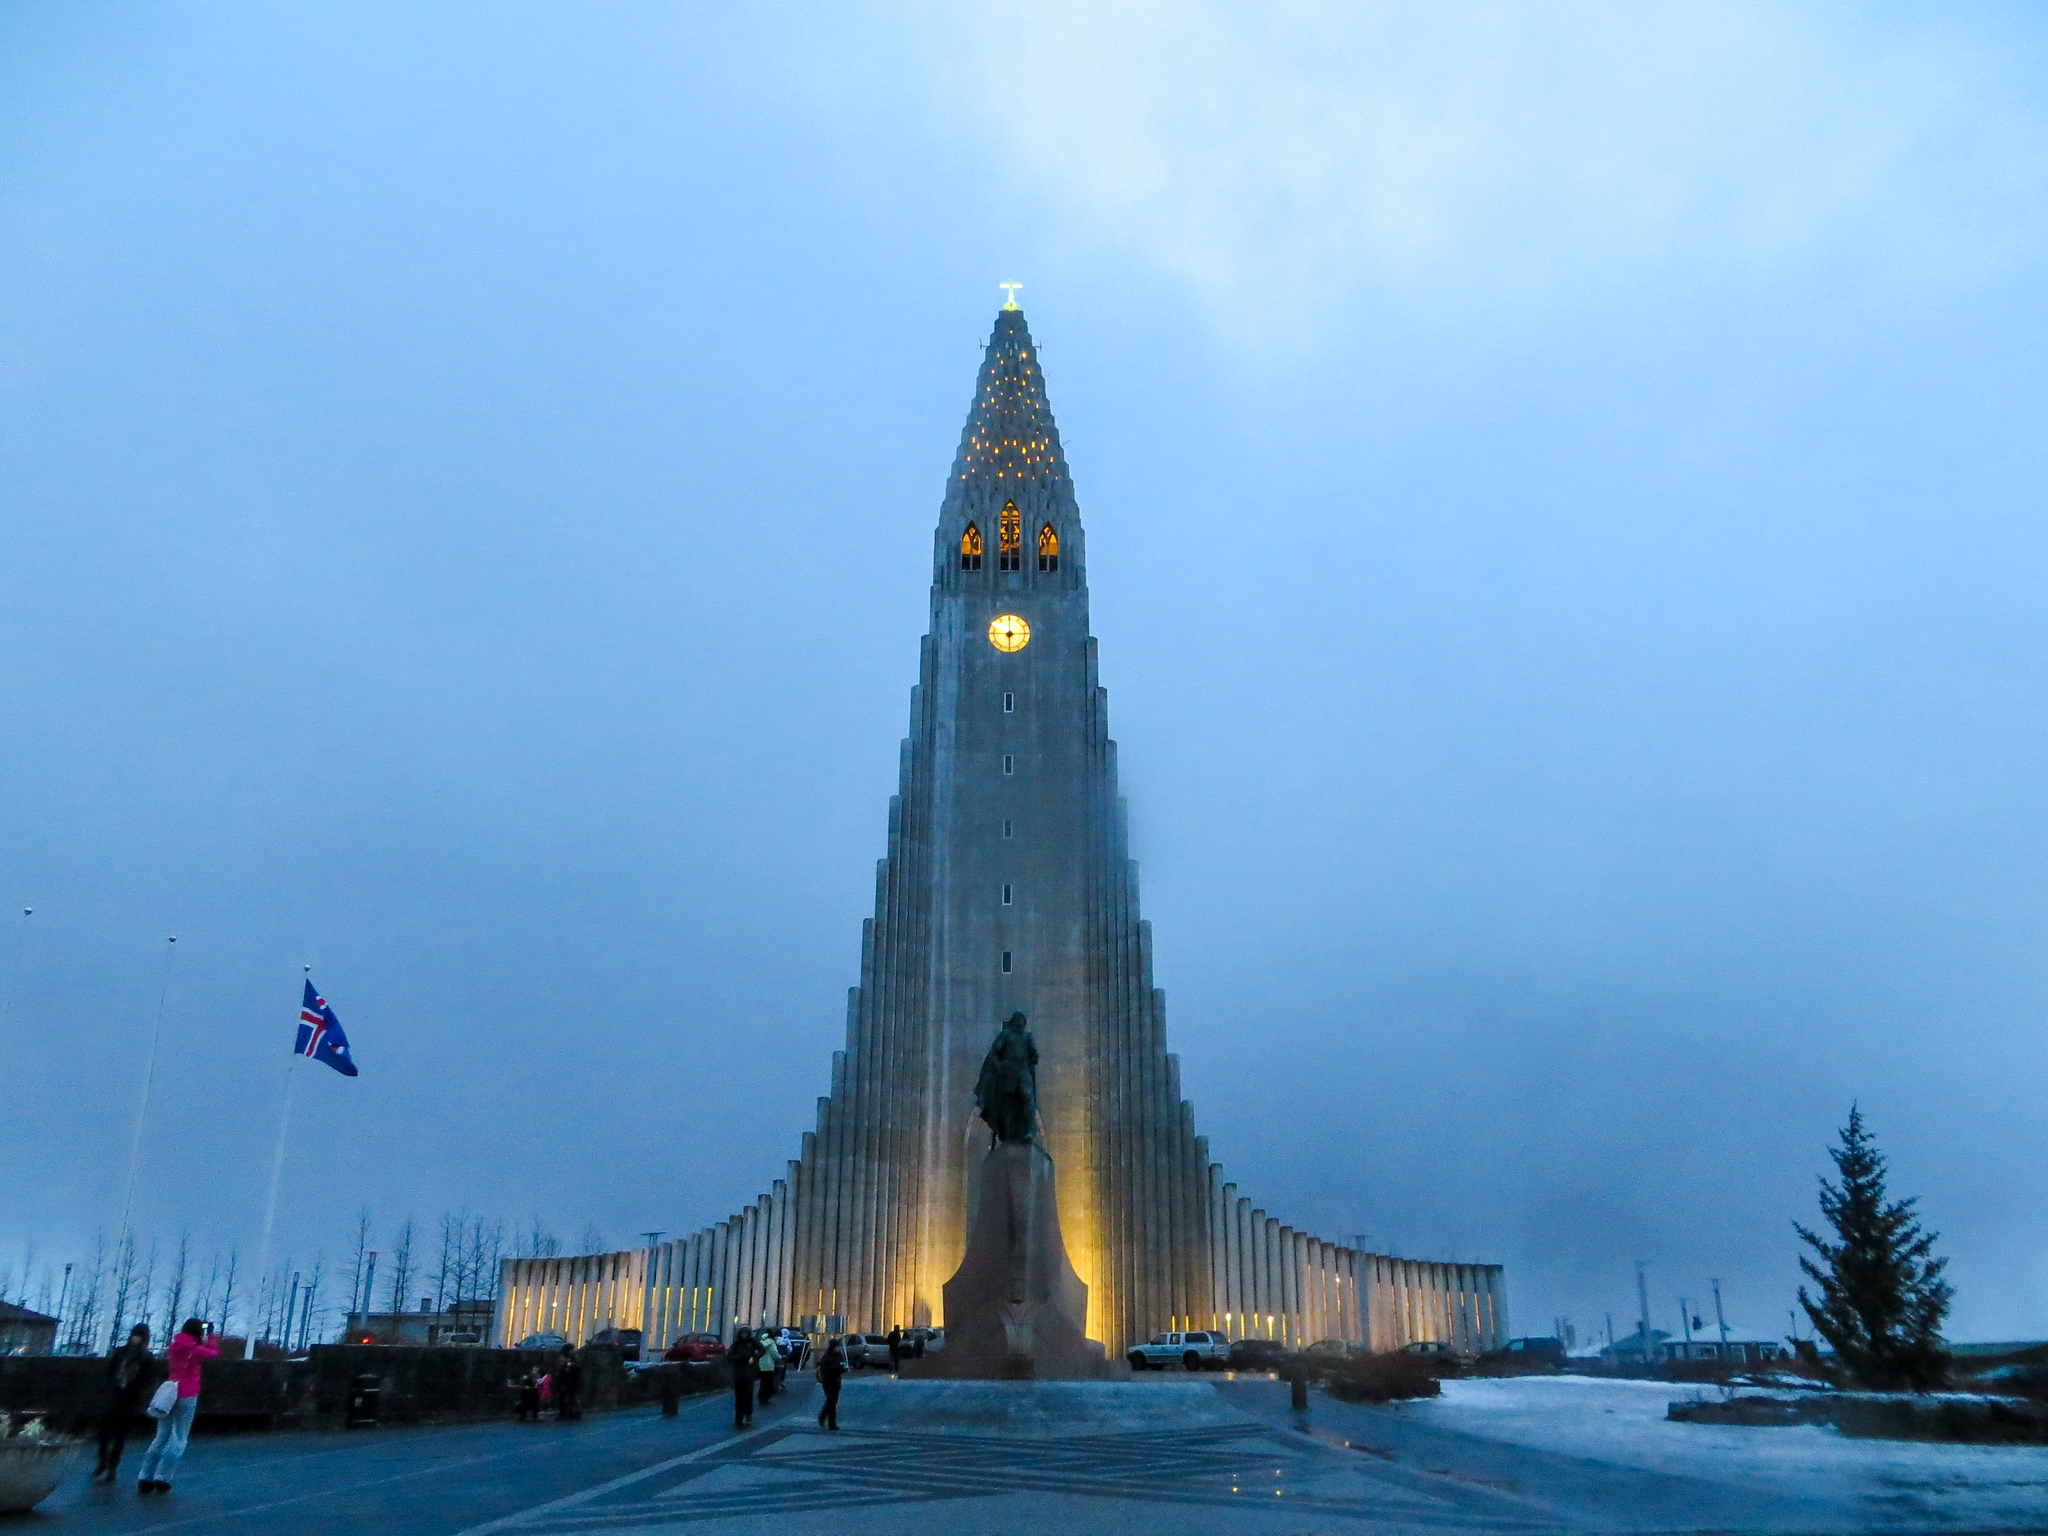 travelling in europe alone is safe. iceland is one of the safest places in the world.